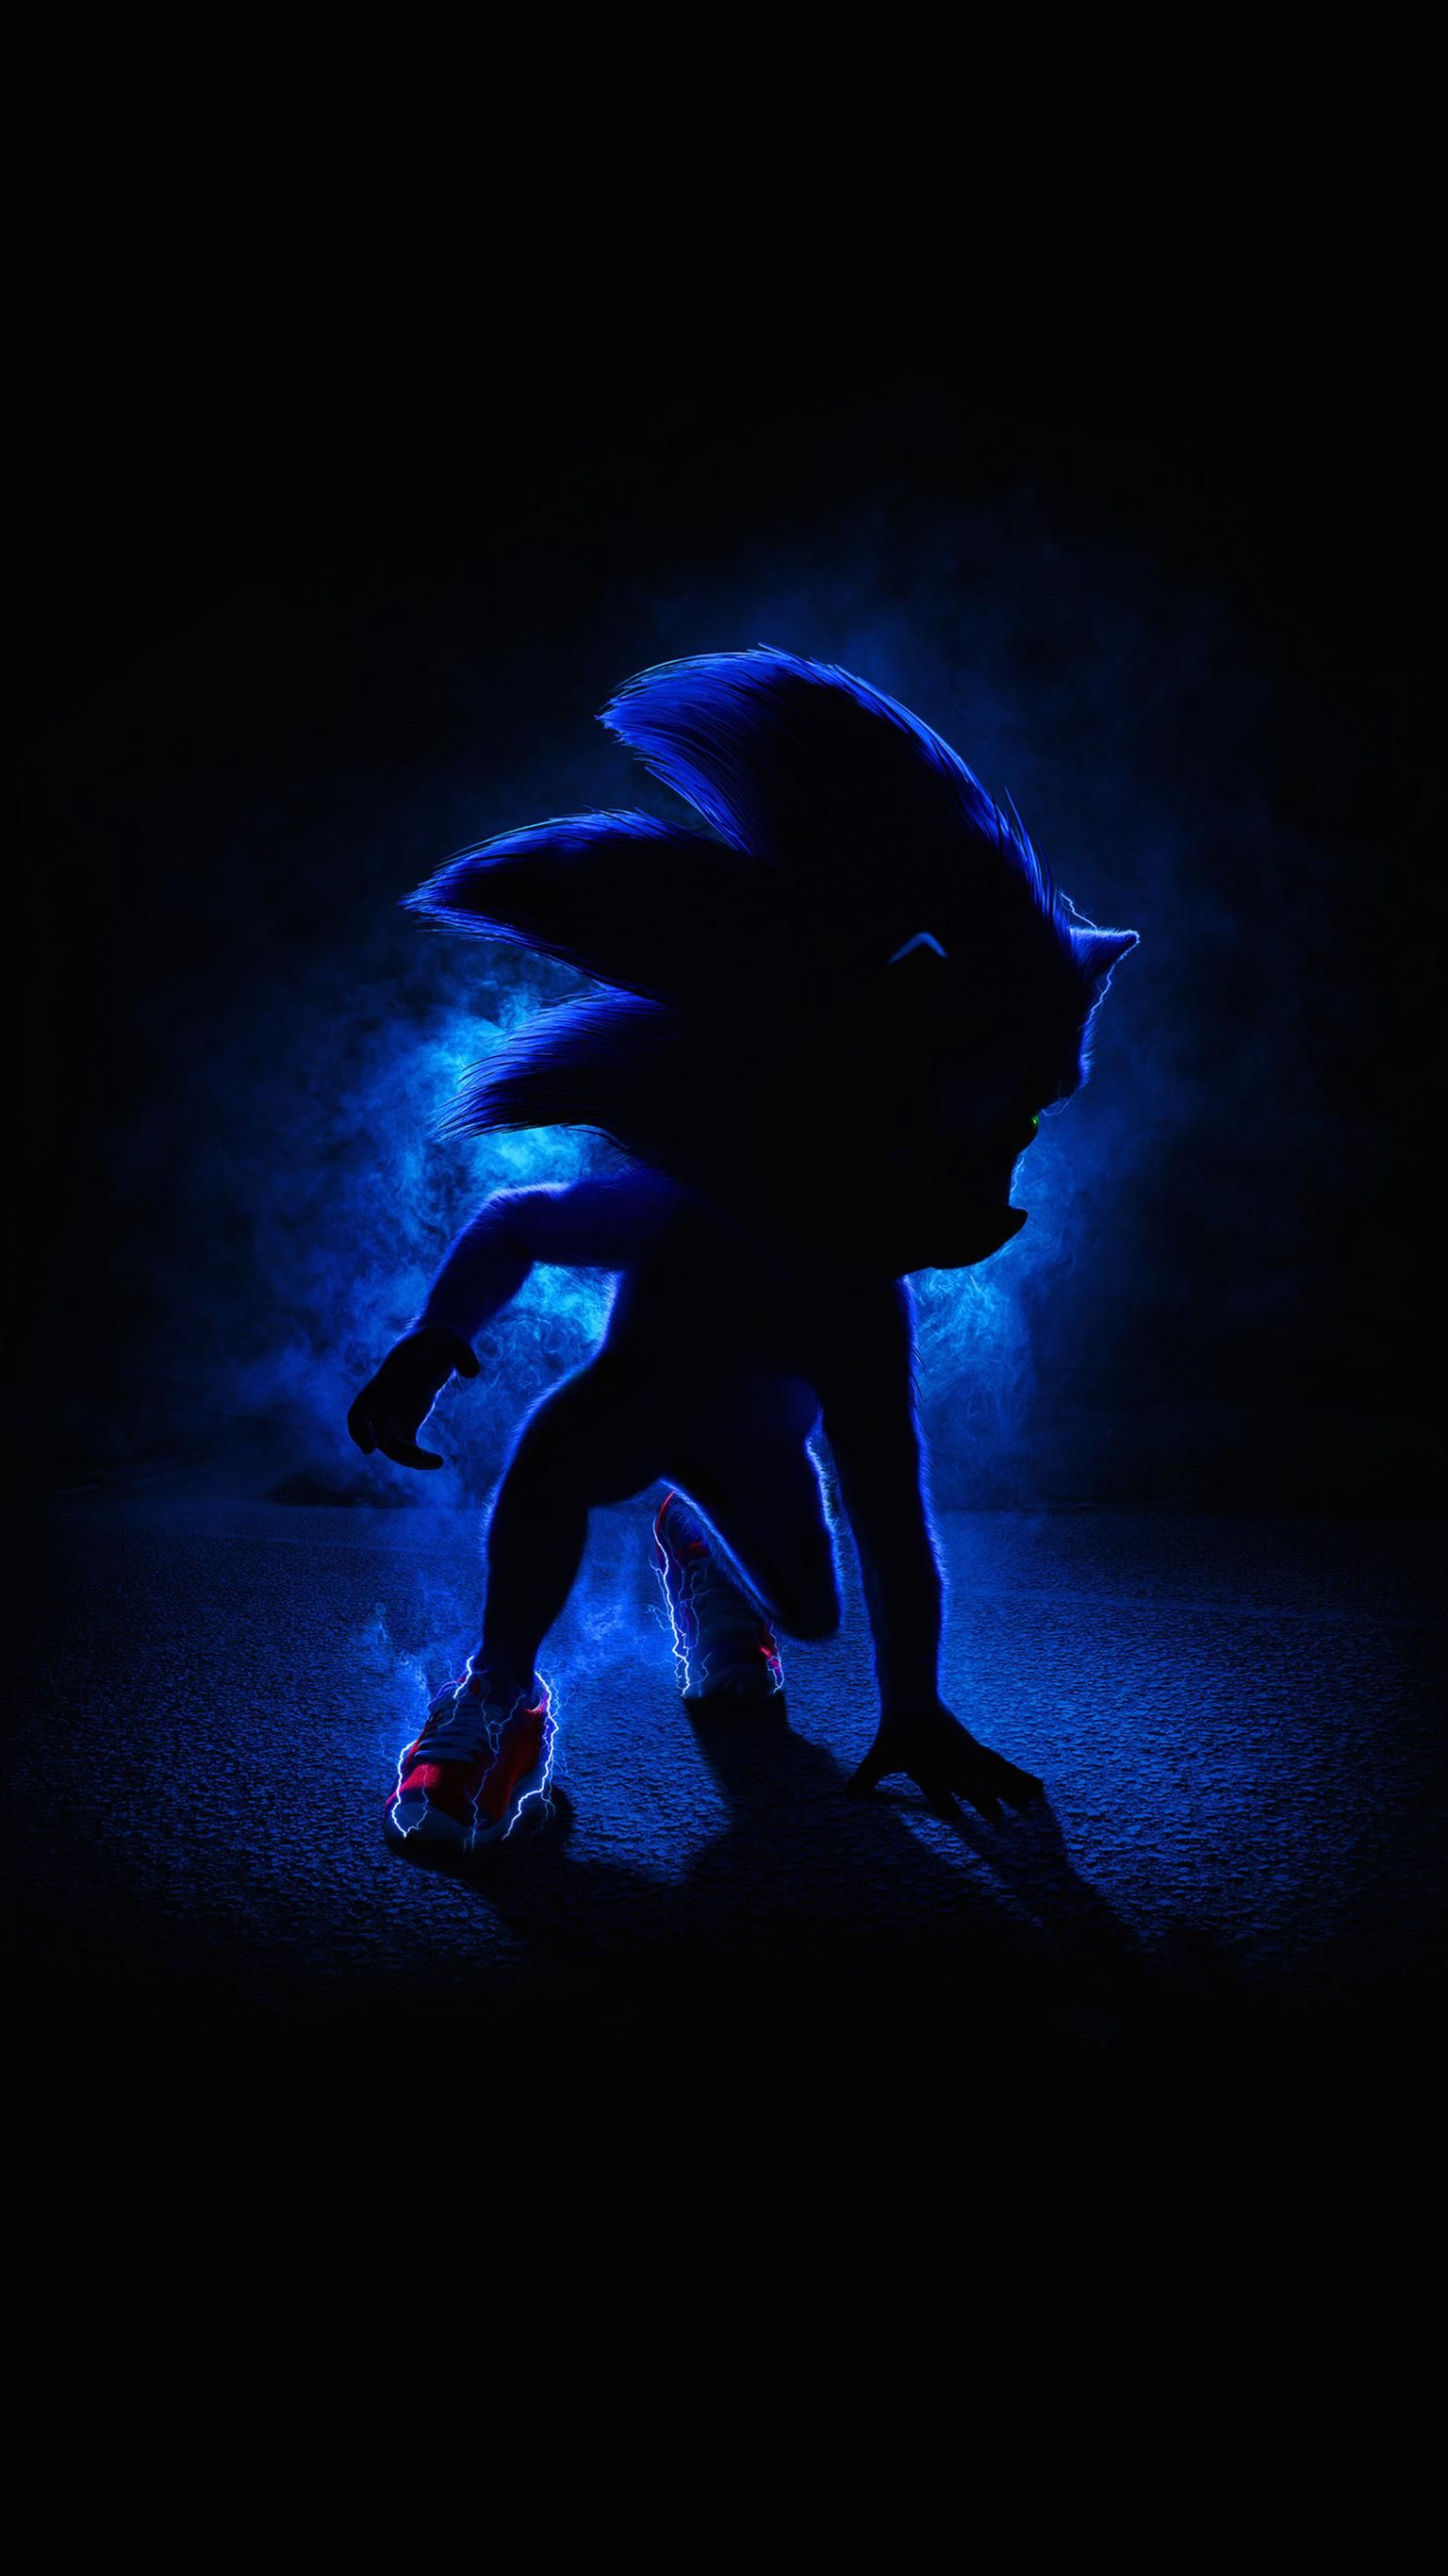 Sonic the Hedgehog 2020 Phone Wallpaper Moviemania Hedgehog 1536x2732